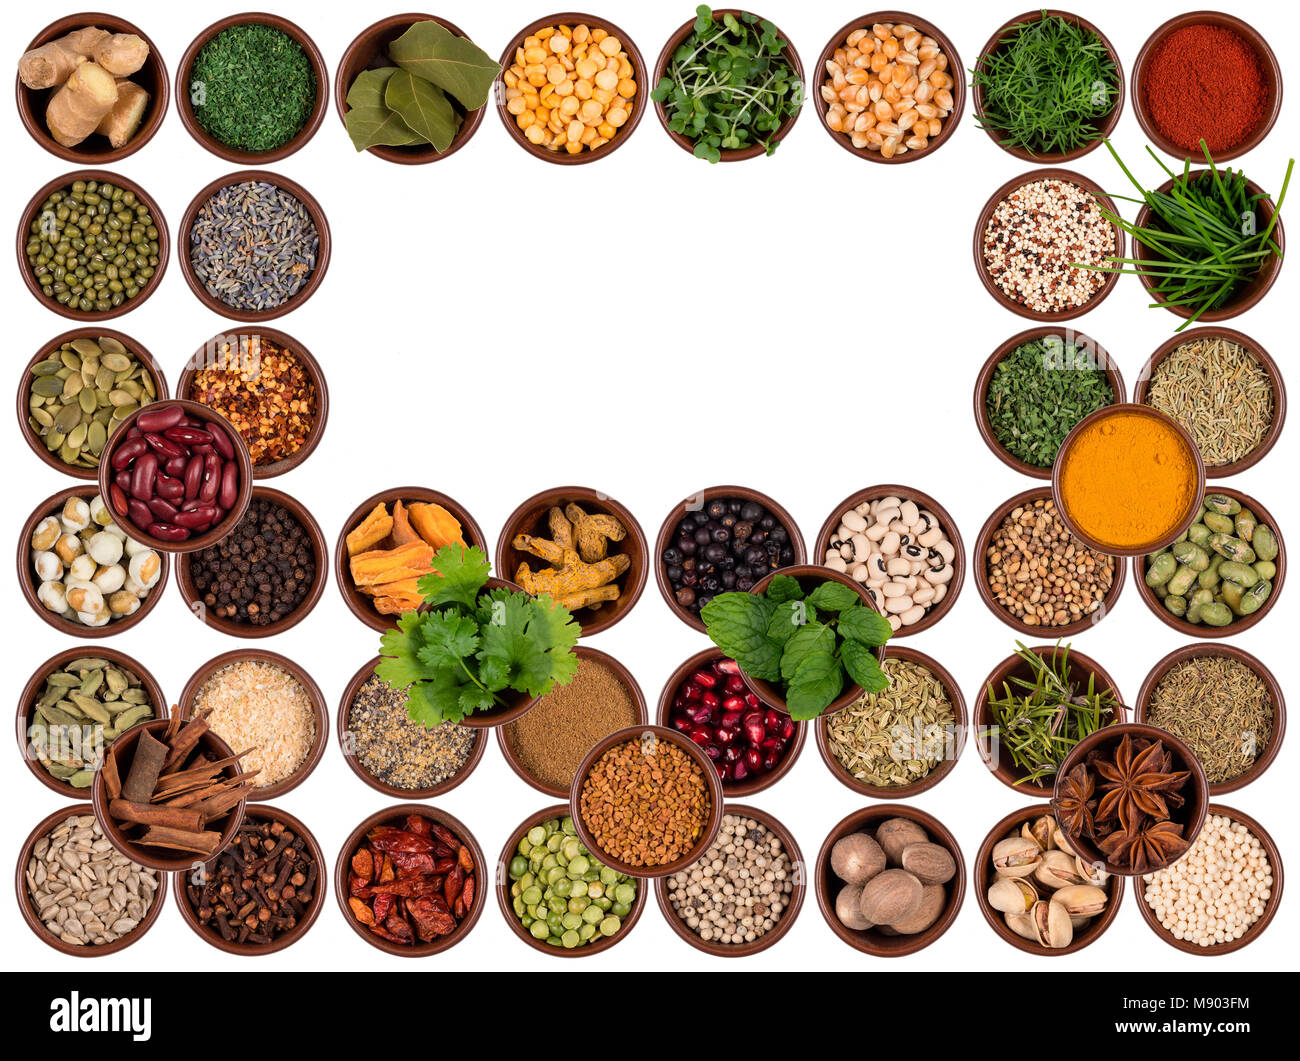 Selection of cooking ingredients to add flavor and seasoning - Space for text. - Stock Image